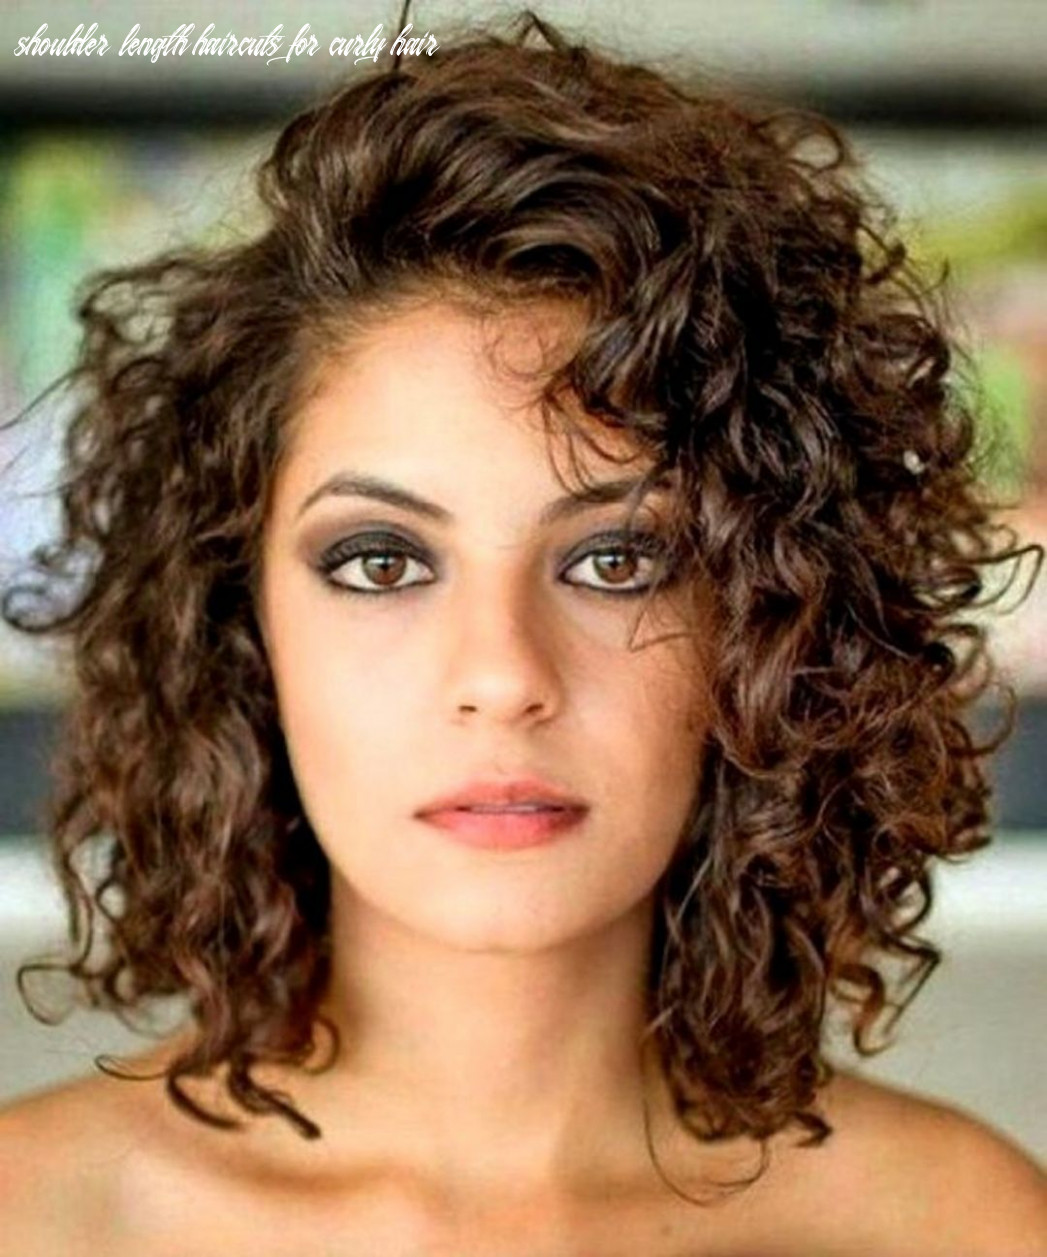 Pin on hairstyles shoulder length haircuts for curly hair